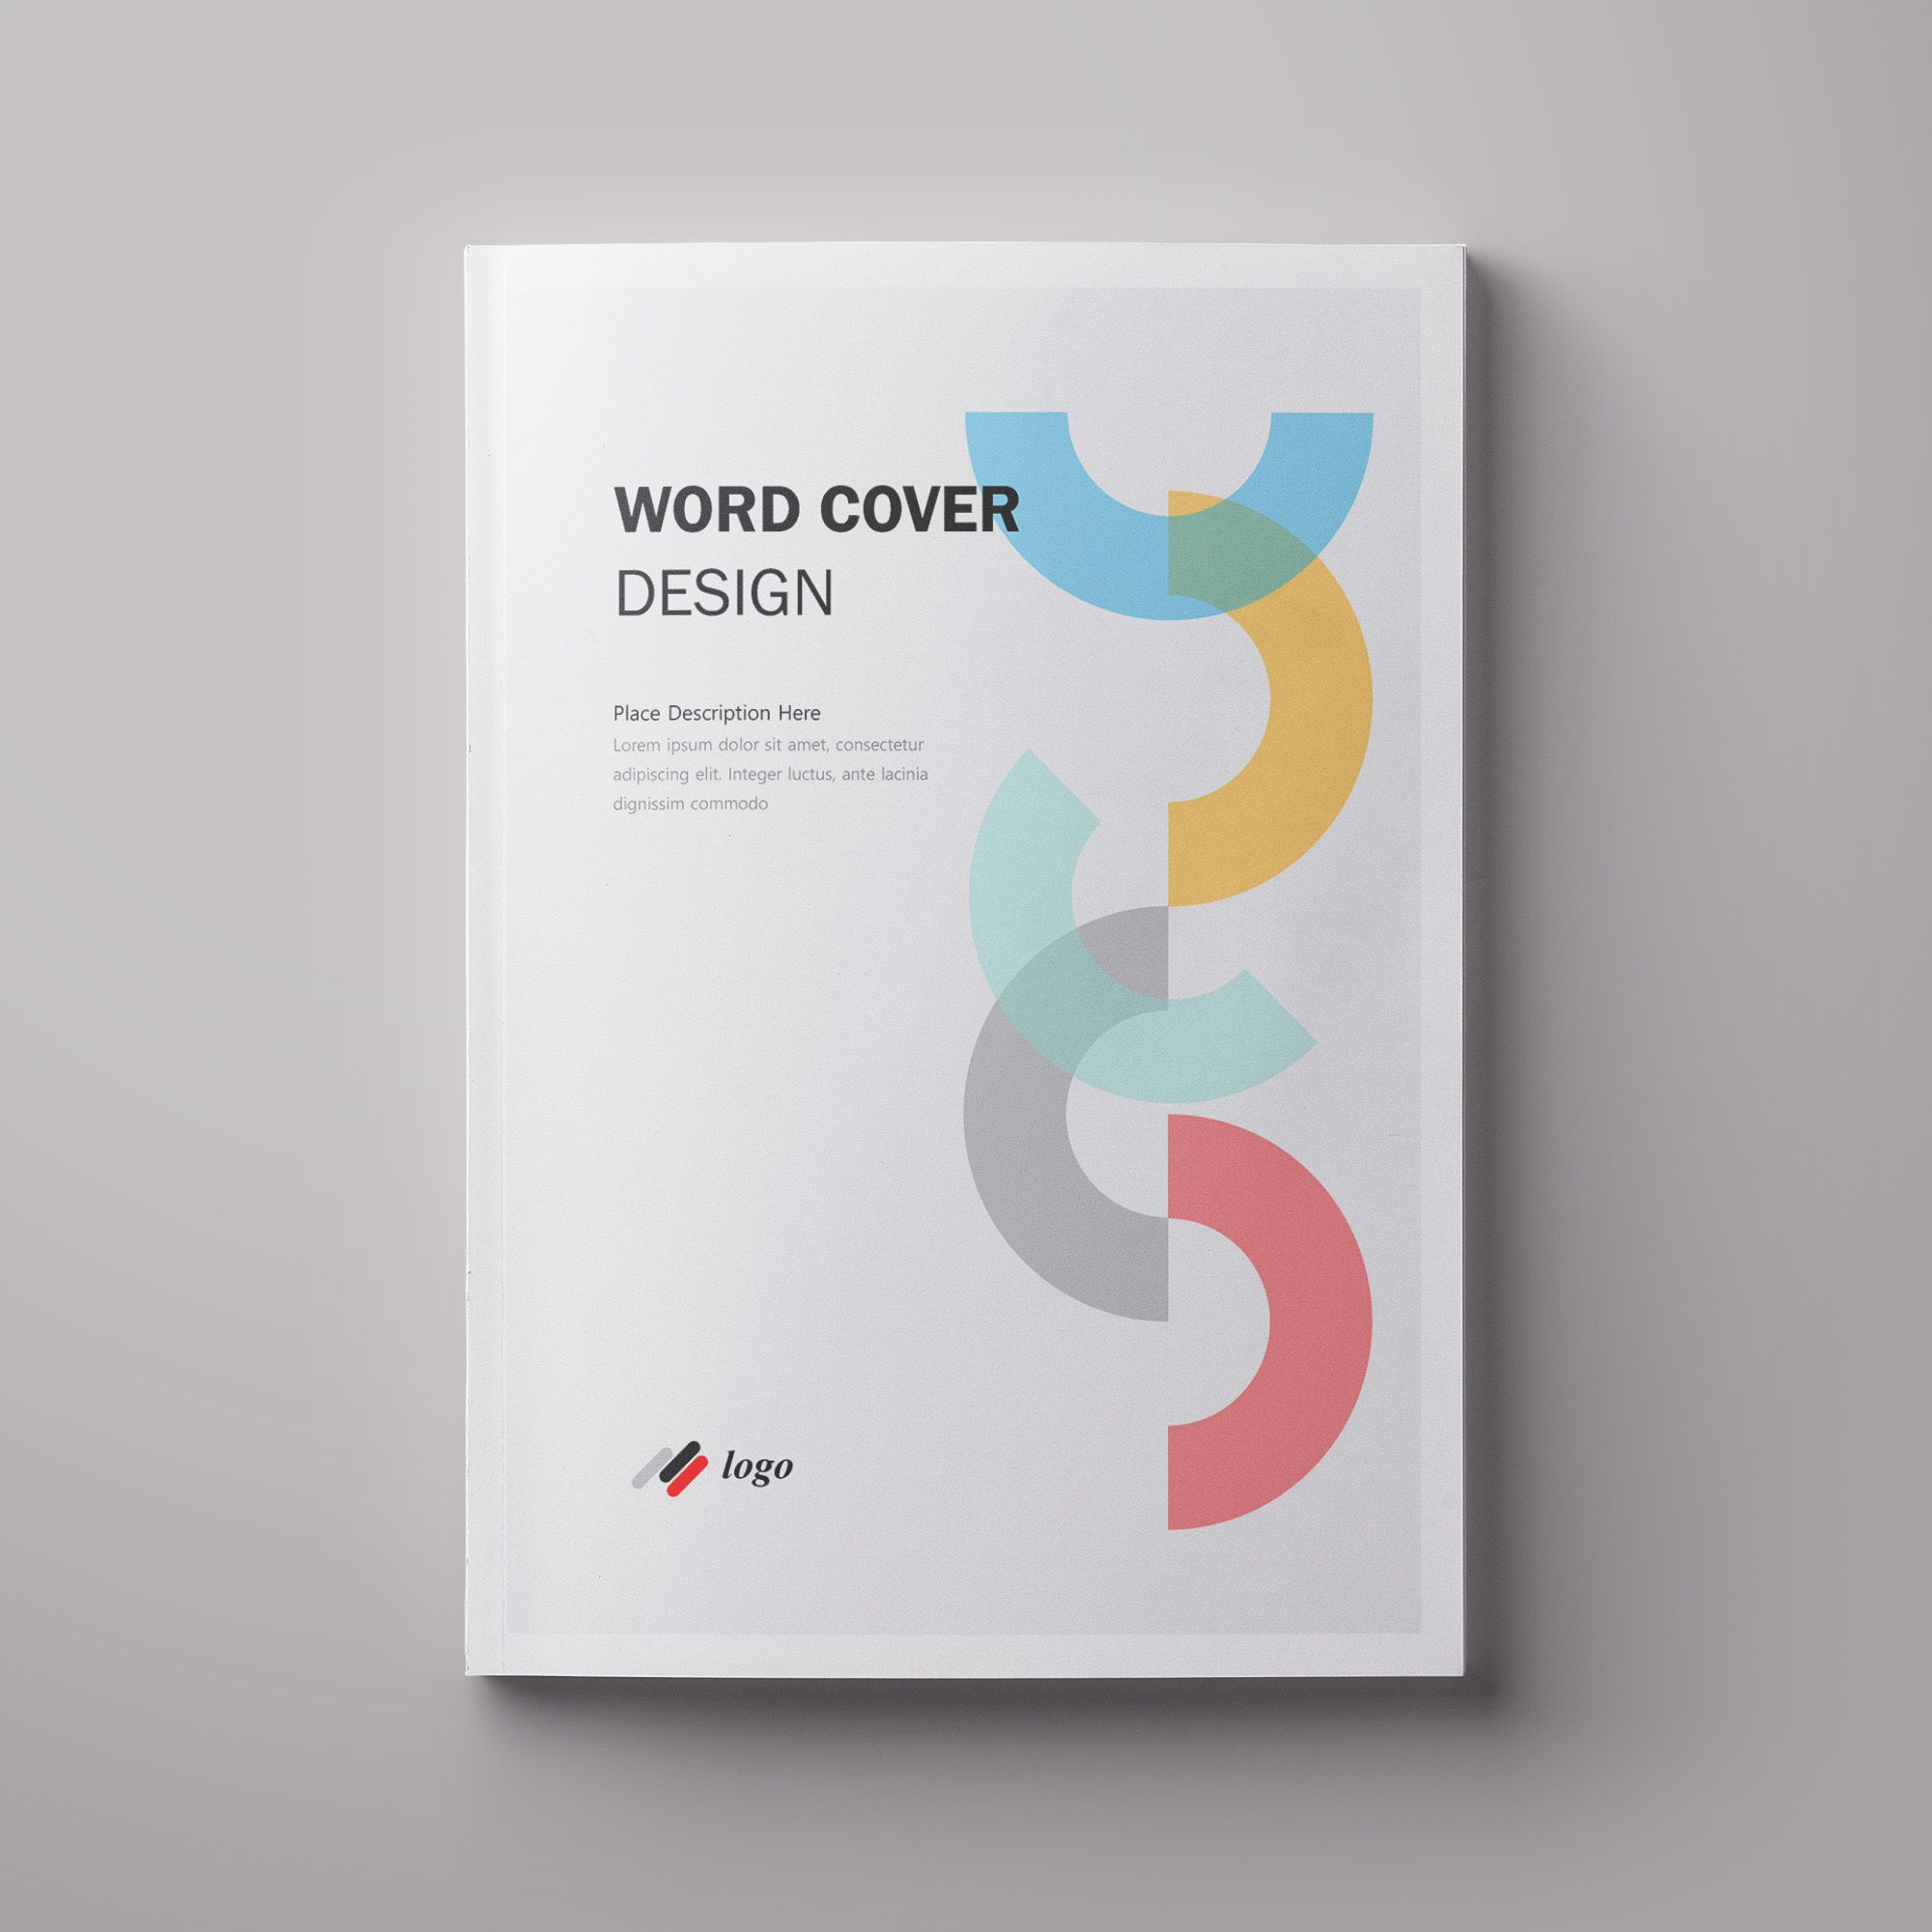 Microsoft Word Cover Templates 10 Free Download in 2020